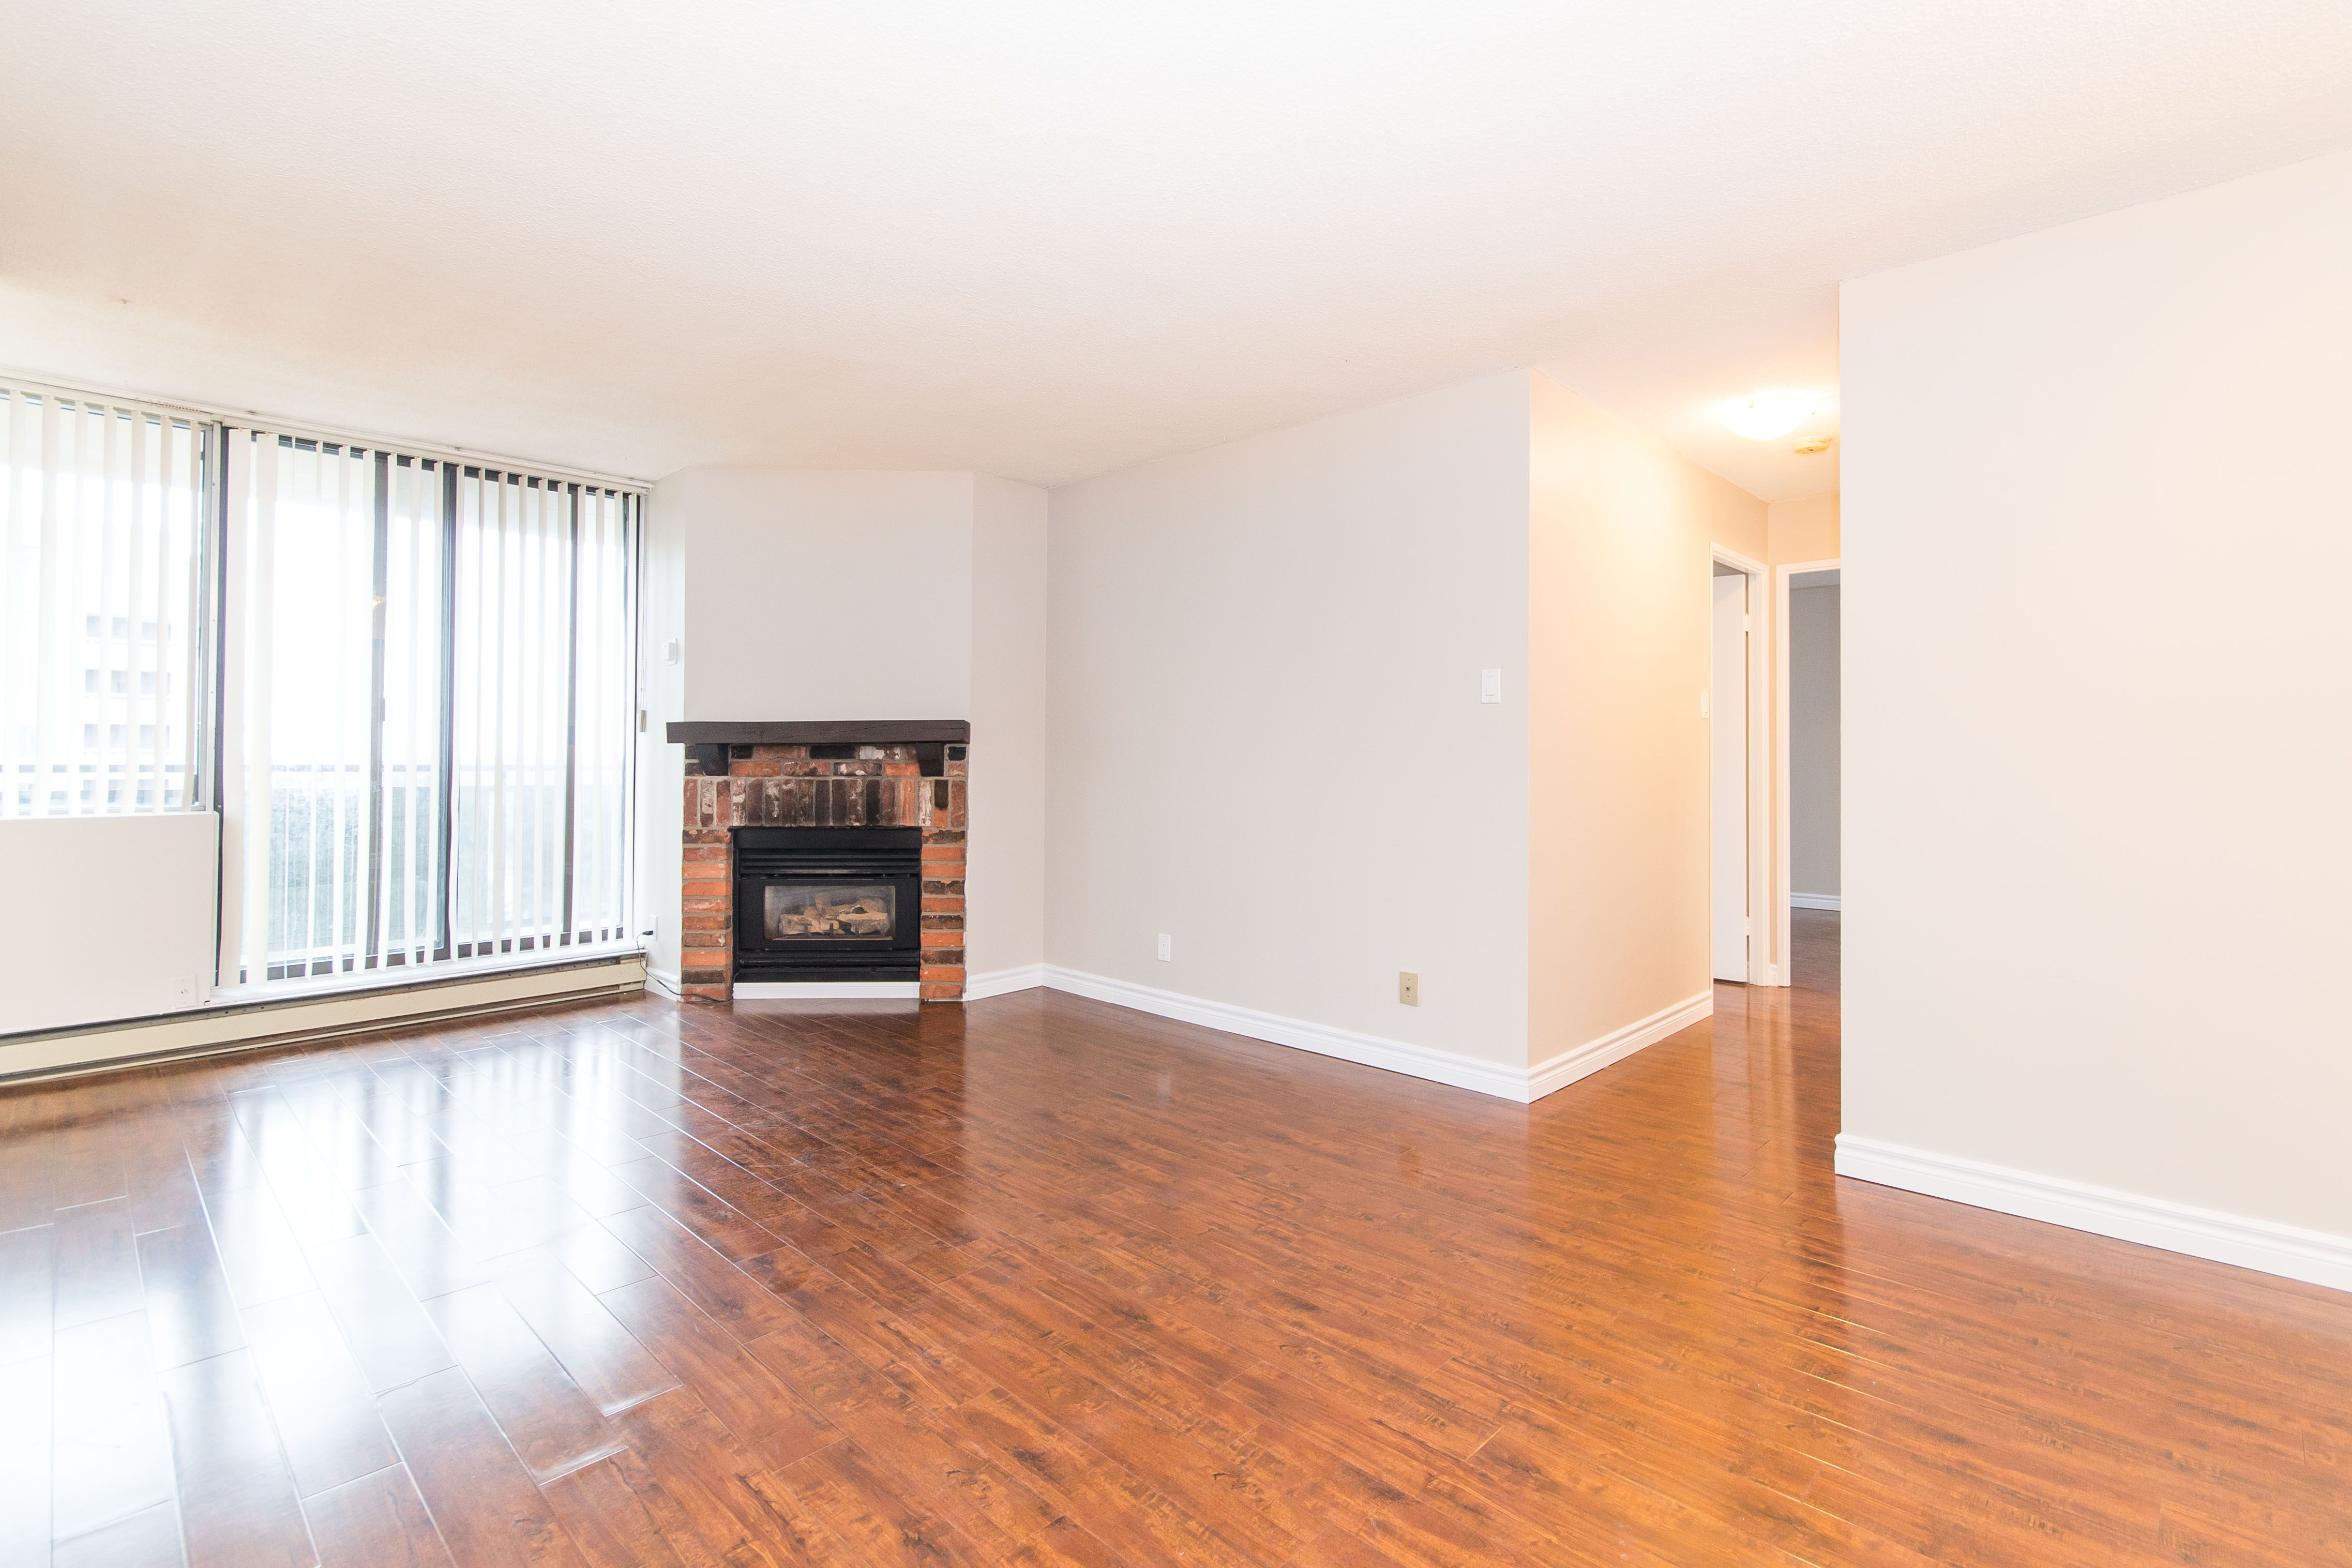 2757 Battleford Mississauga Now Under New Management 2757 Battleford Road Offers Beautifully Upgraded Apartments For Rent Two Bedroom Apartments Apartment